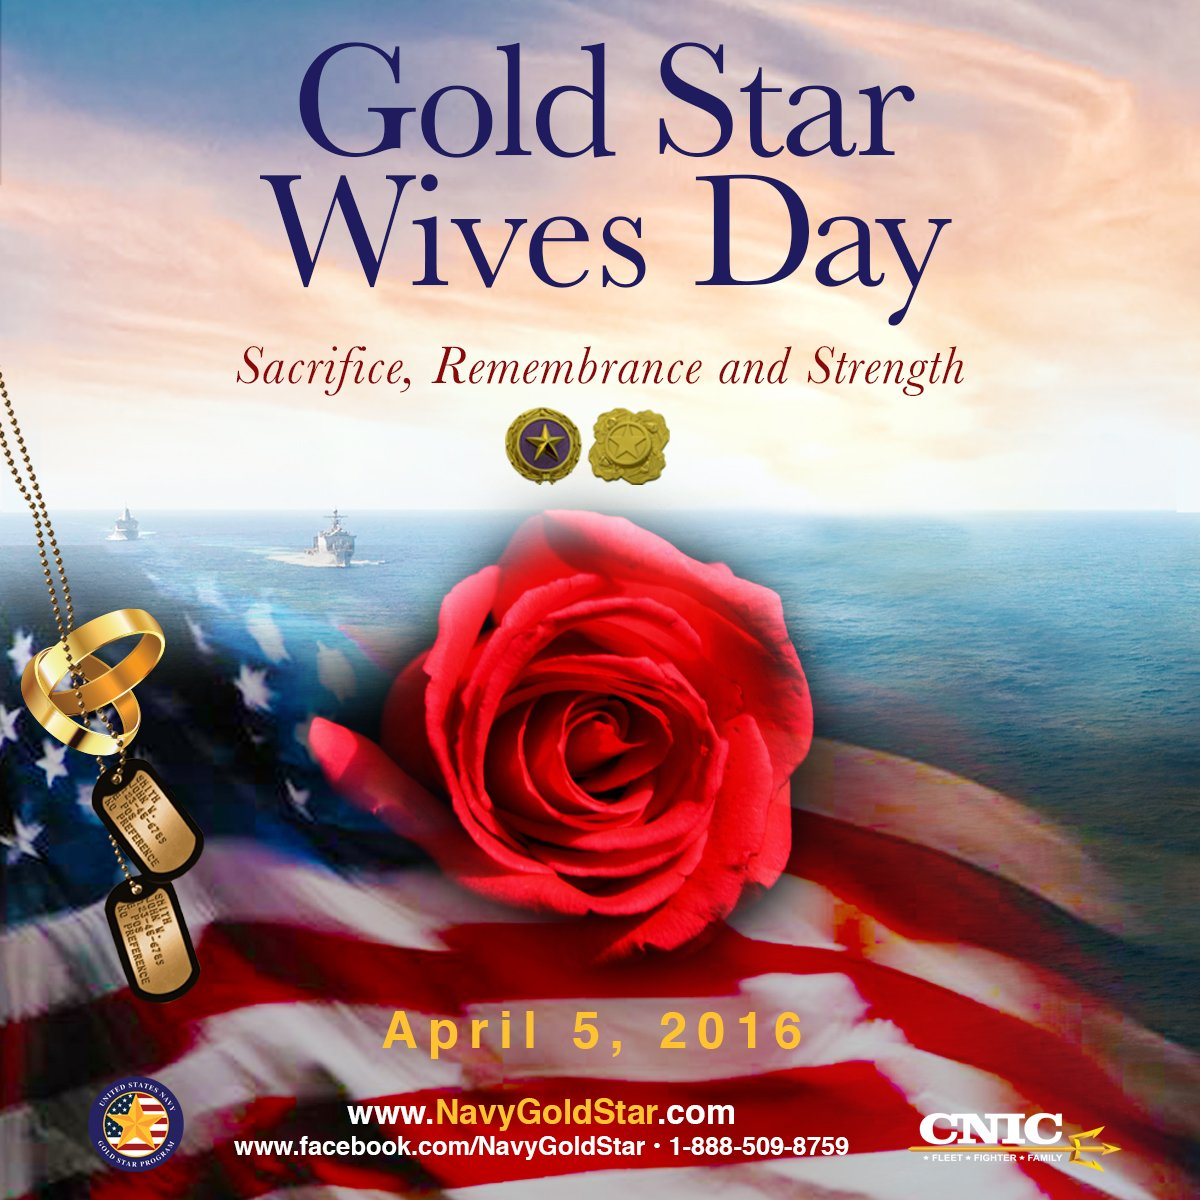 Today we recognize and honor the sacrifice and strength of our Gold Star Spouses. https://t.co/dQzwDLSMvw